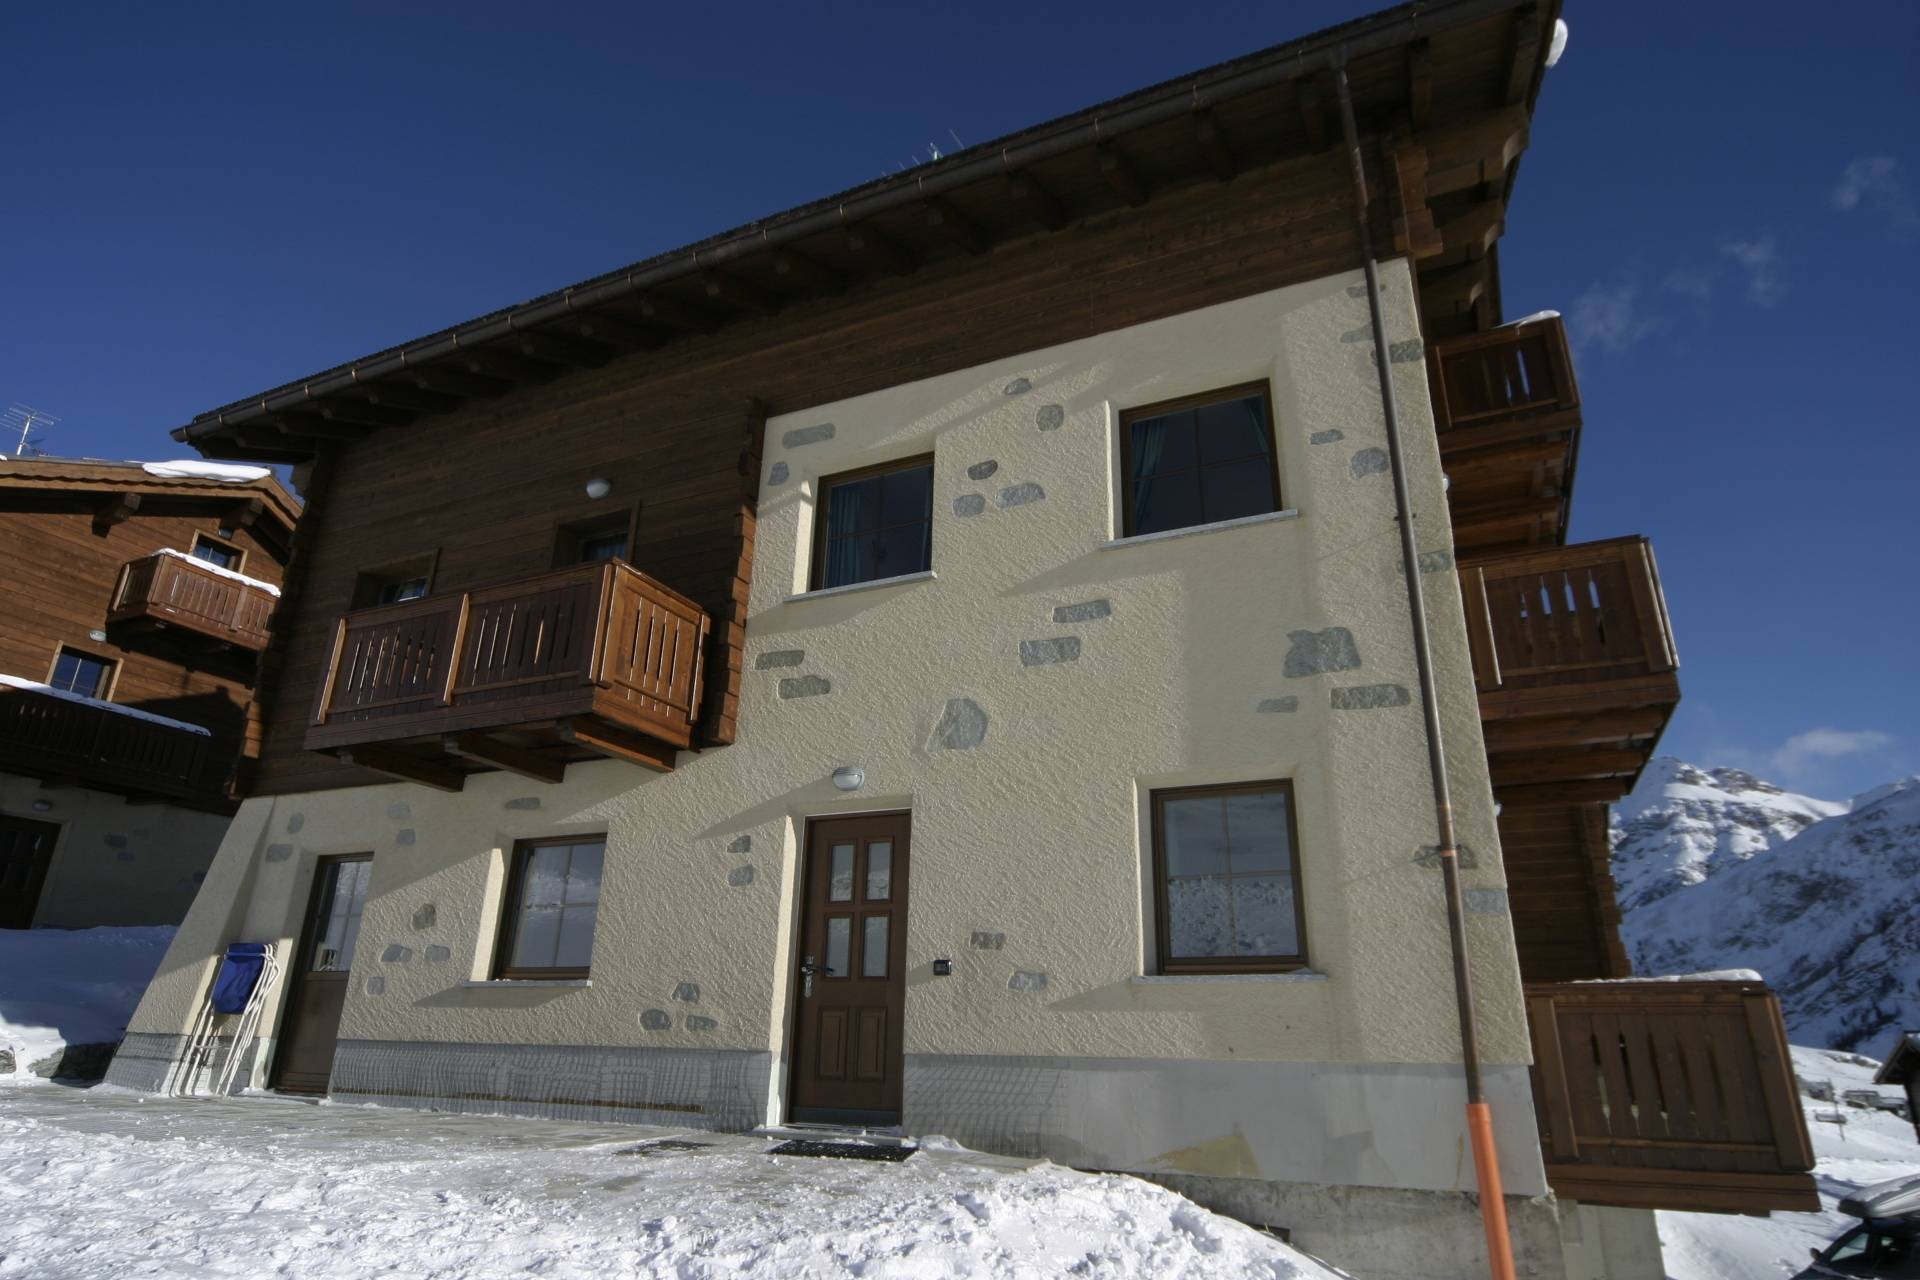 Chalet Genny - vacanze in inverno